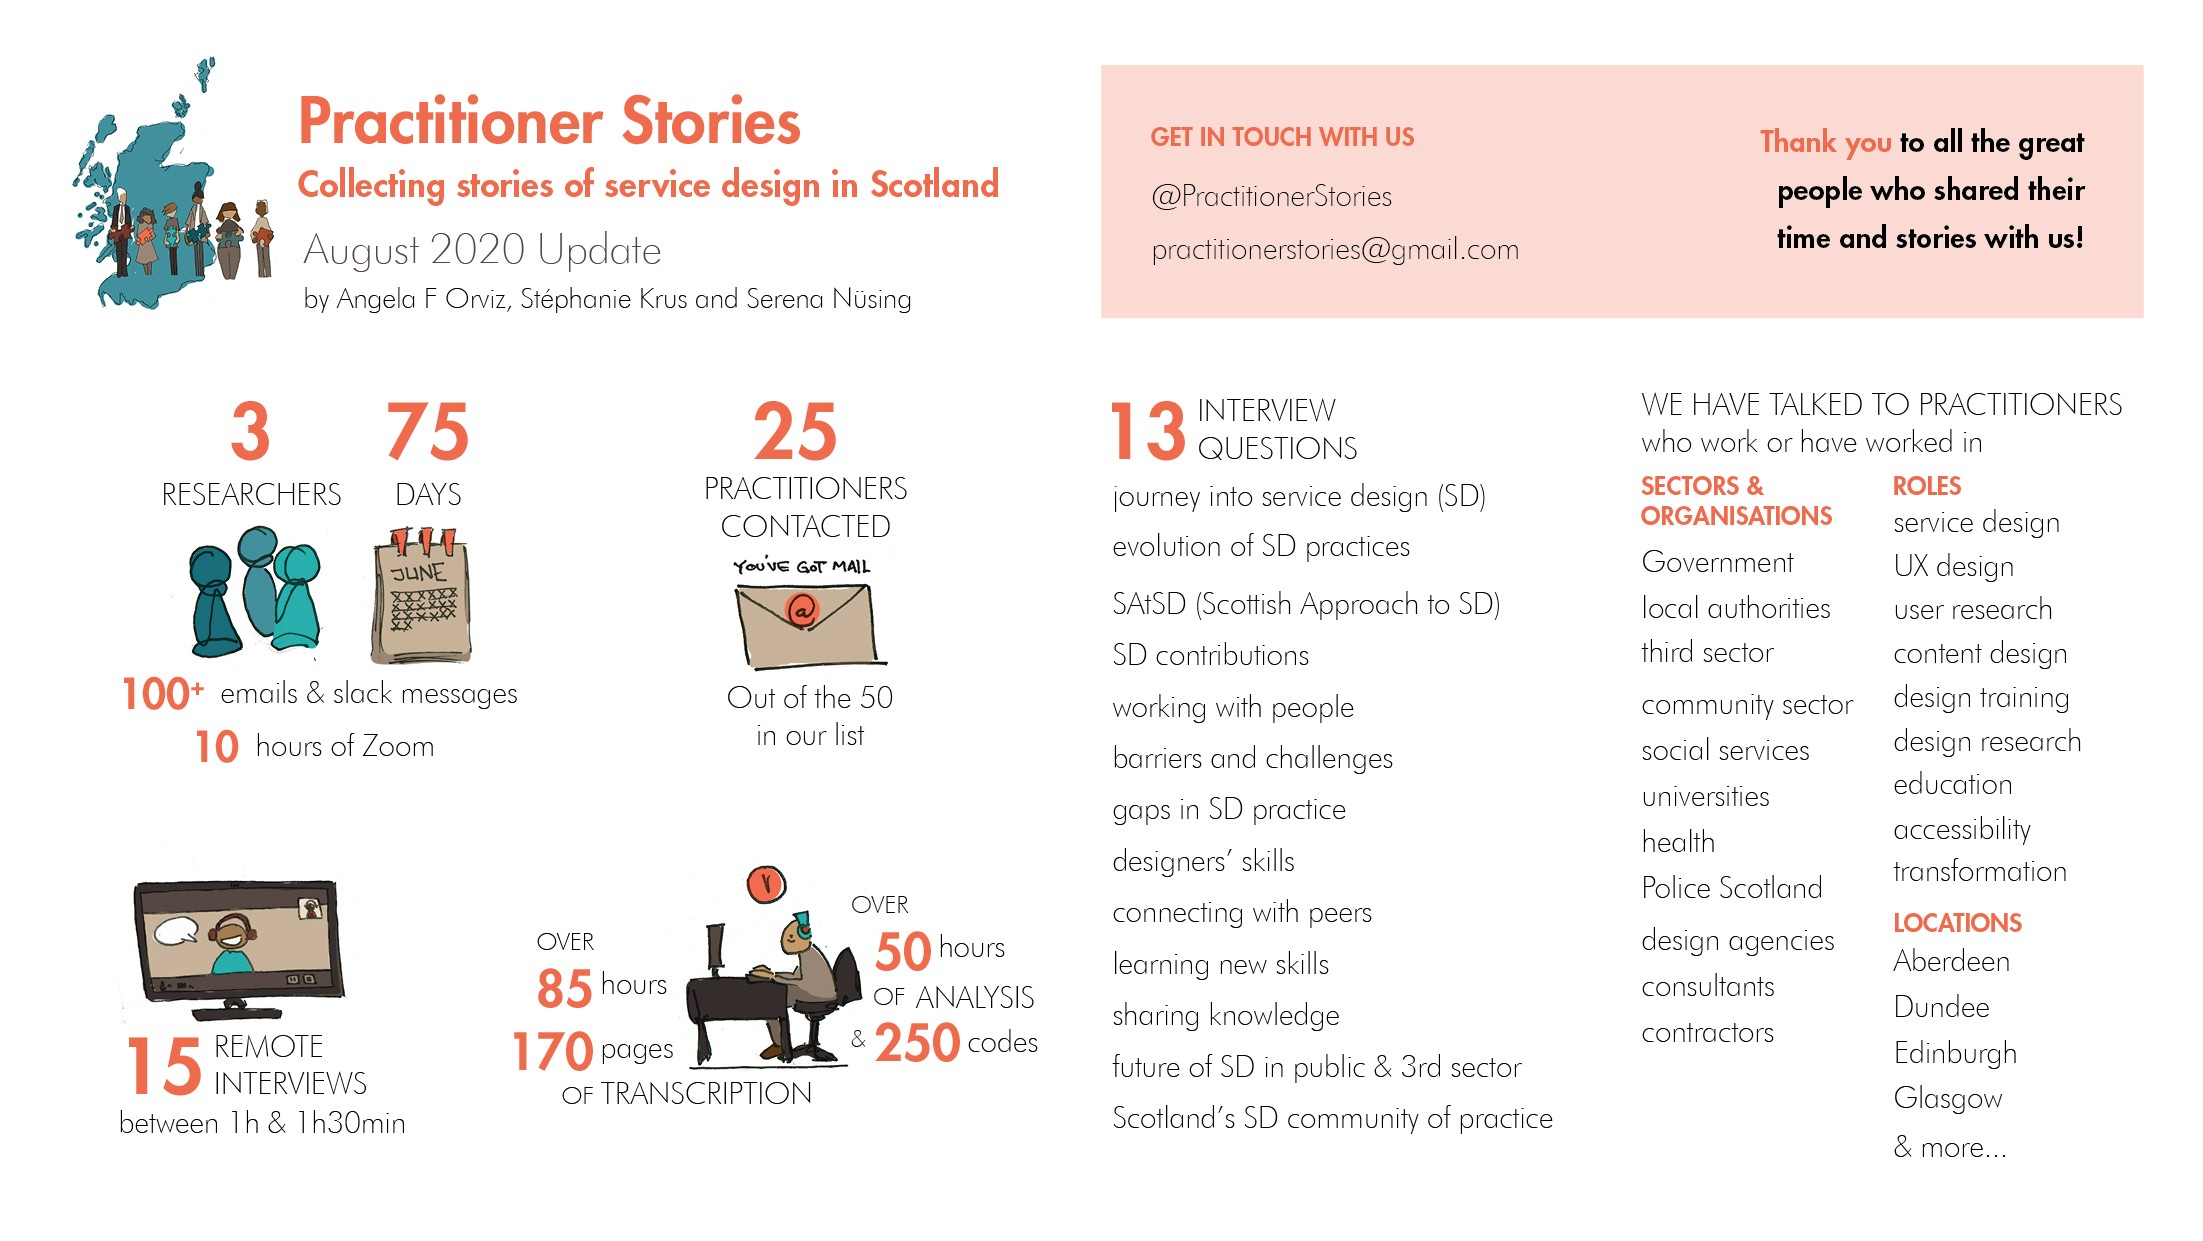 infographic from the August update, the information presented is available as a transcript—link in the caption